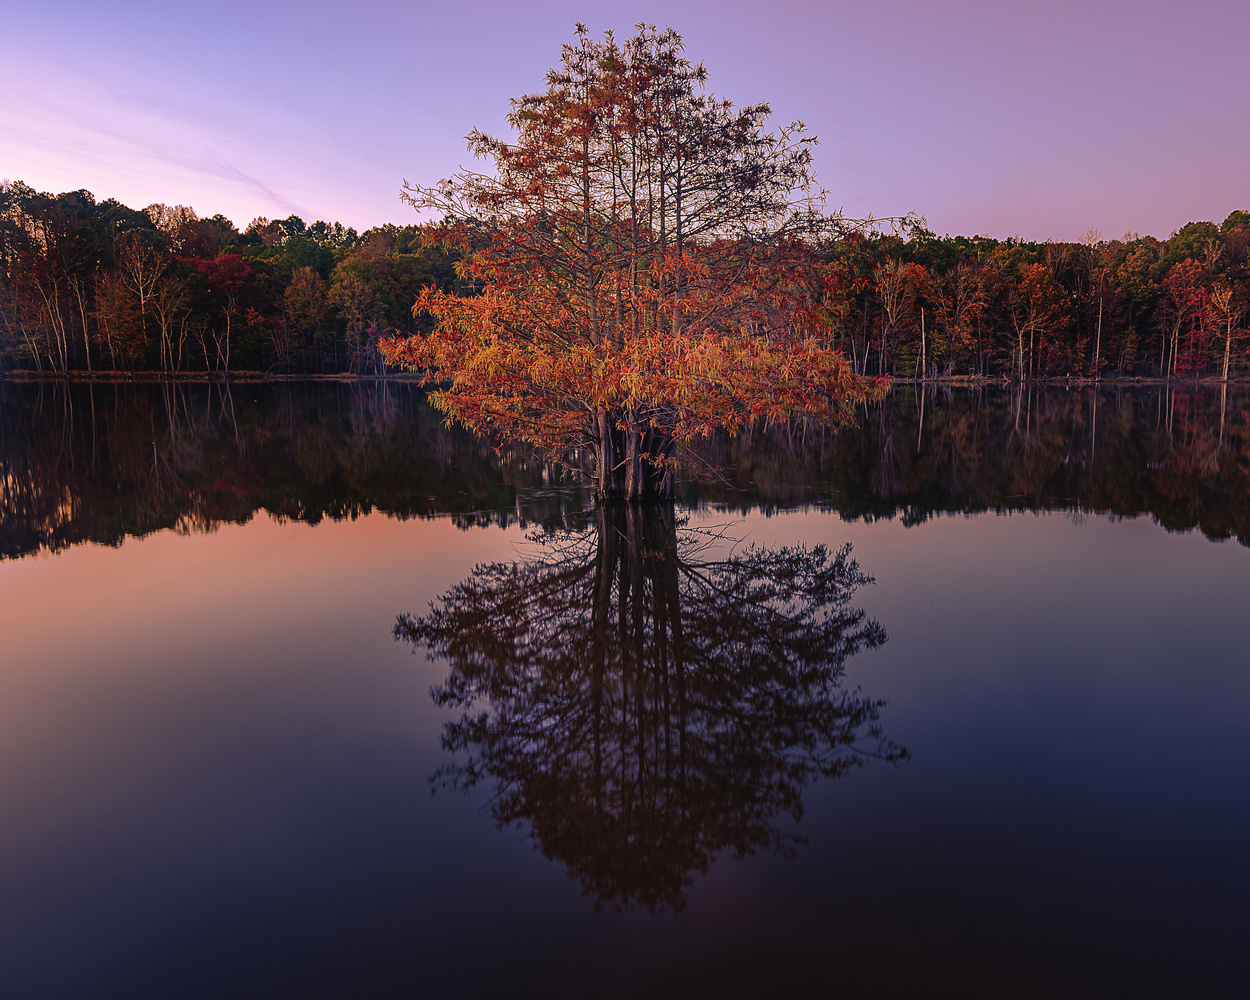 Tree Reflection by Kyle Foreman